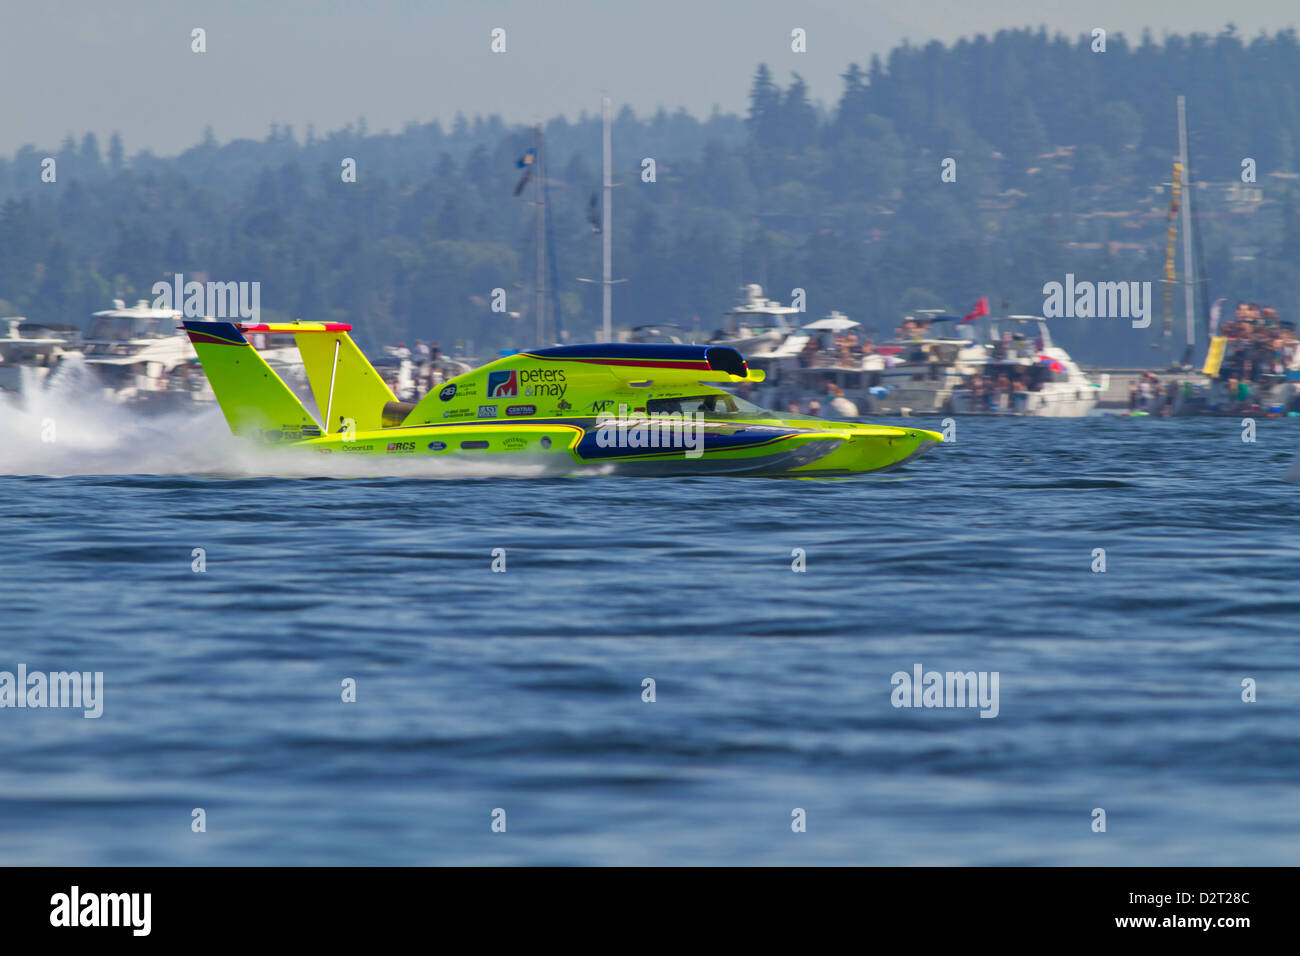 Hydroplane Boat Races Stock Photos & Hydroplane Boat Races